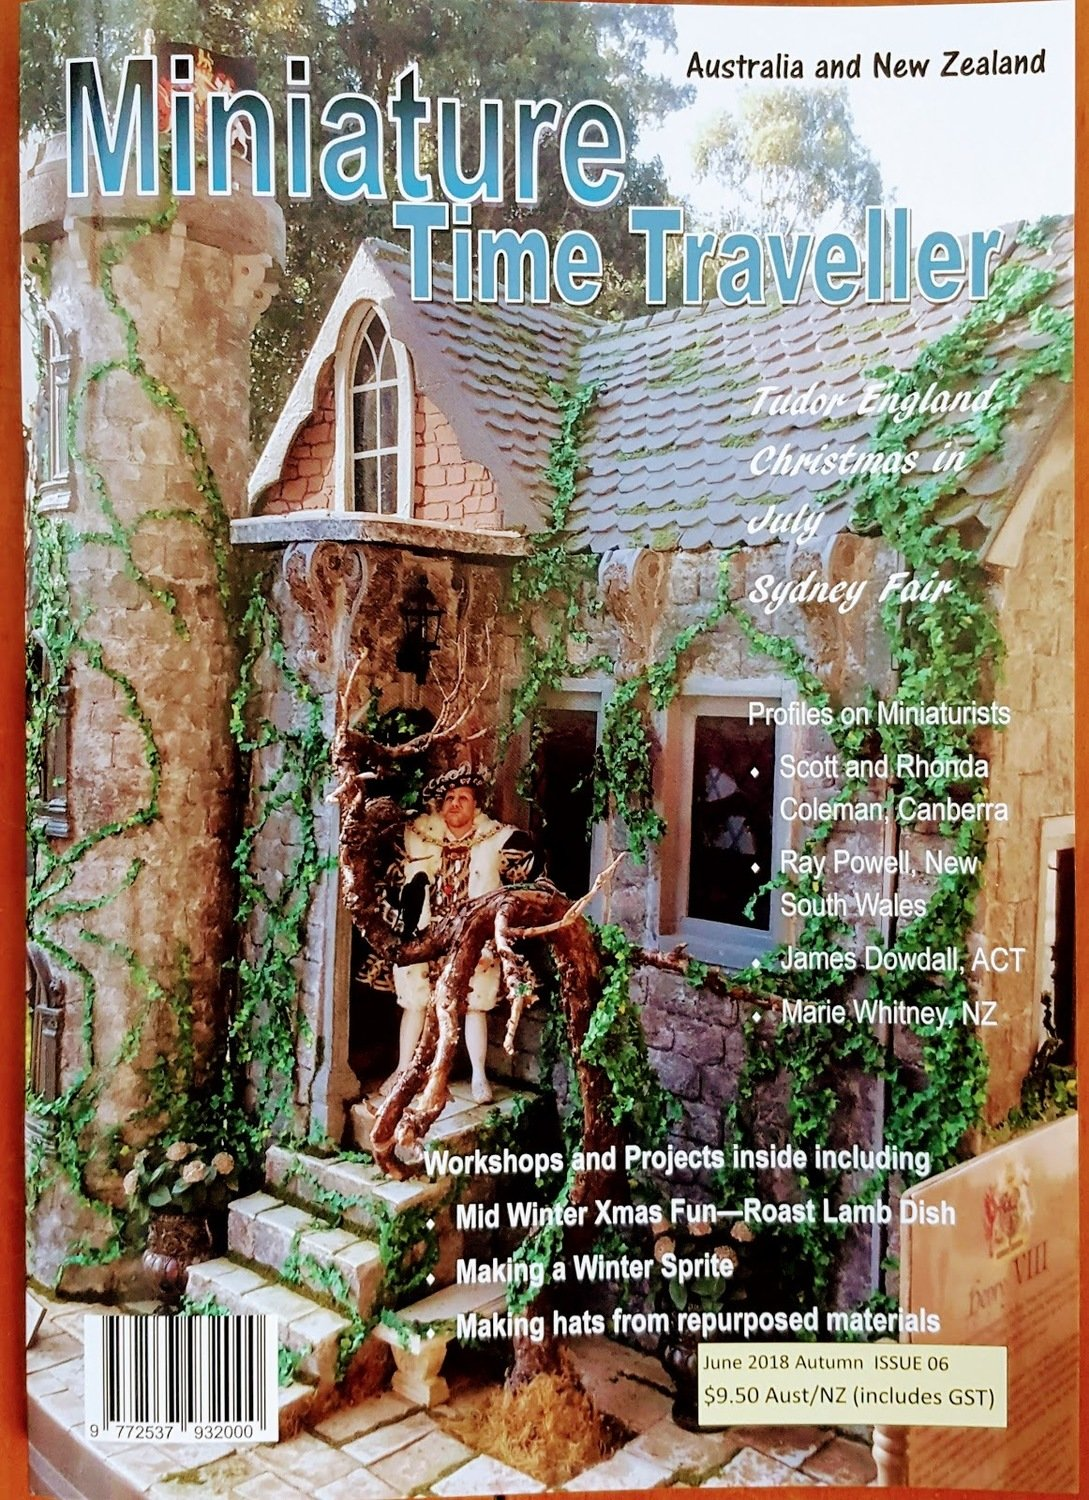 June 2018 Issue - Miniature Time Traveller Magazine - Single copy only. Postage extra